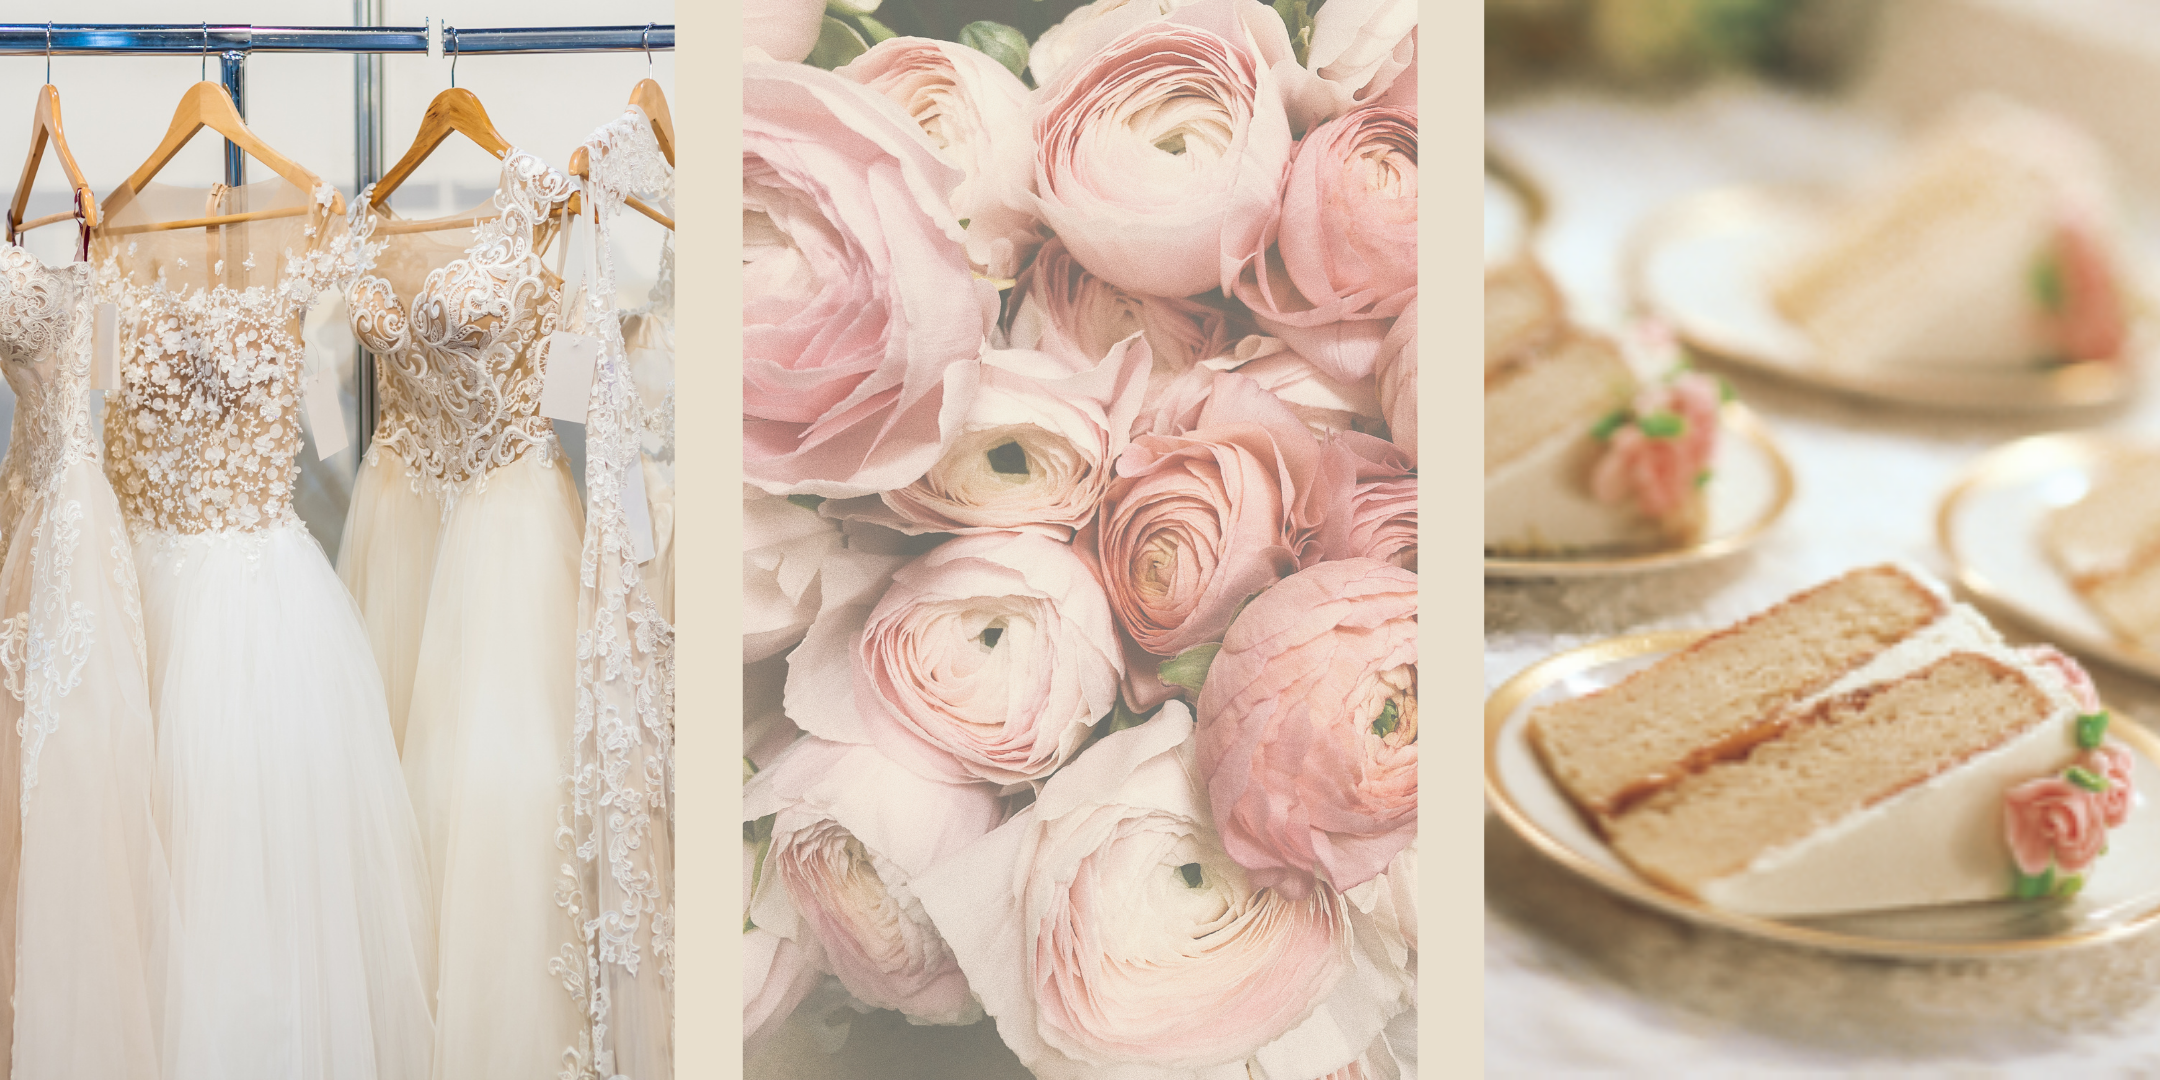 wedding dresses on hangers, pale pink roses, white cake slices on gold plates